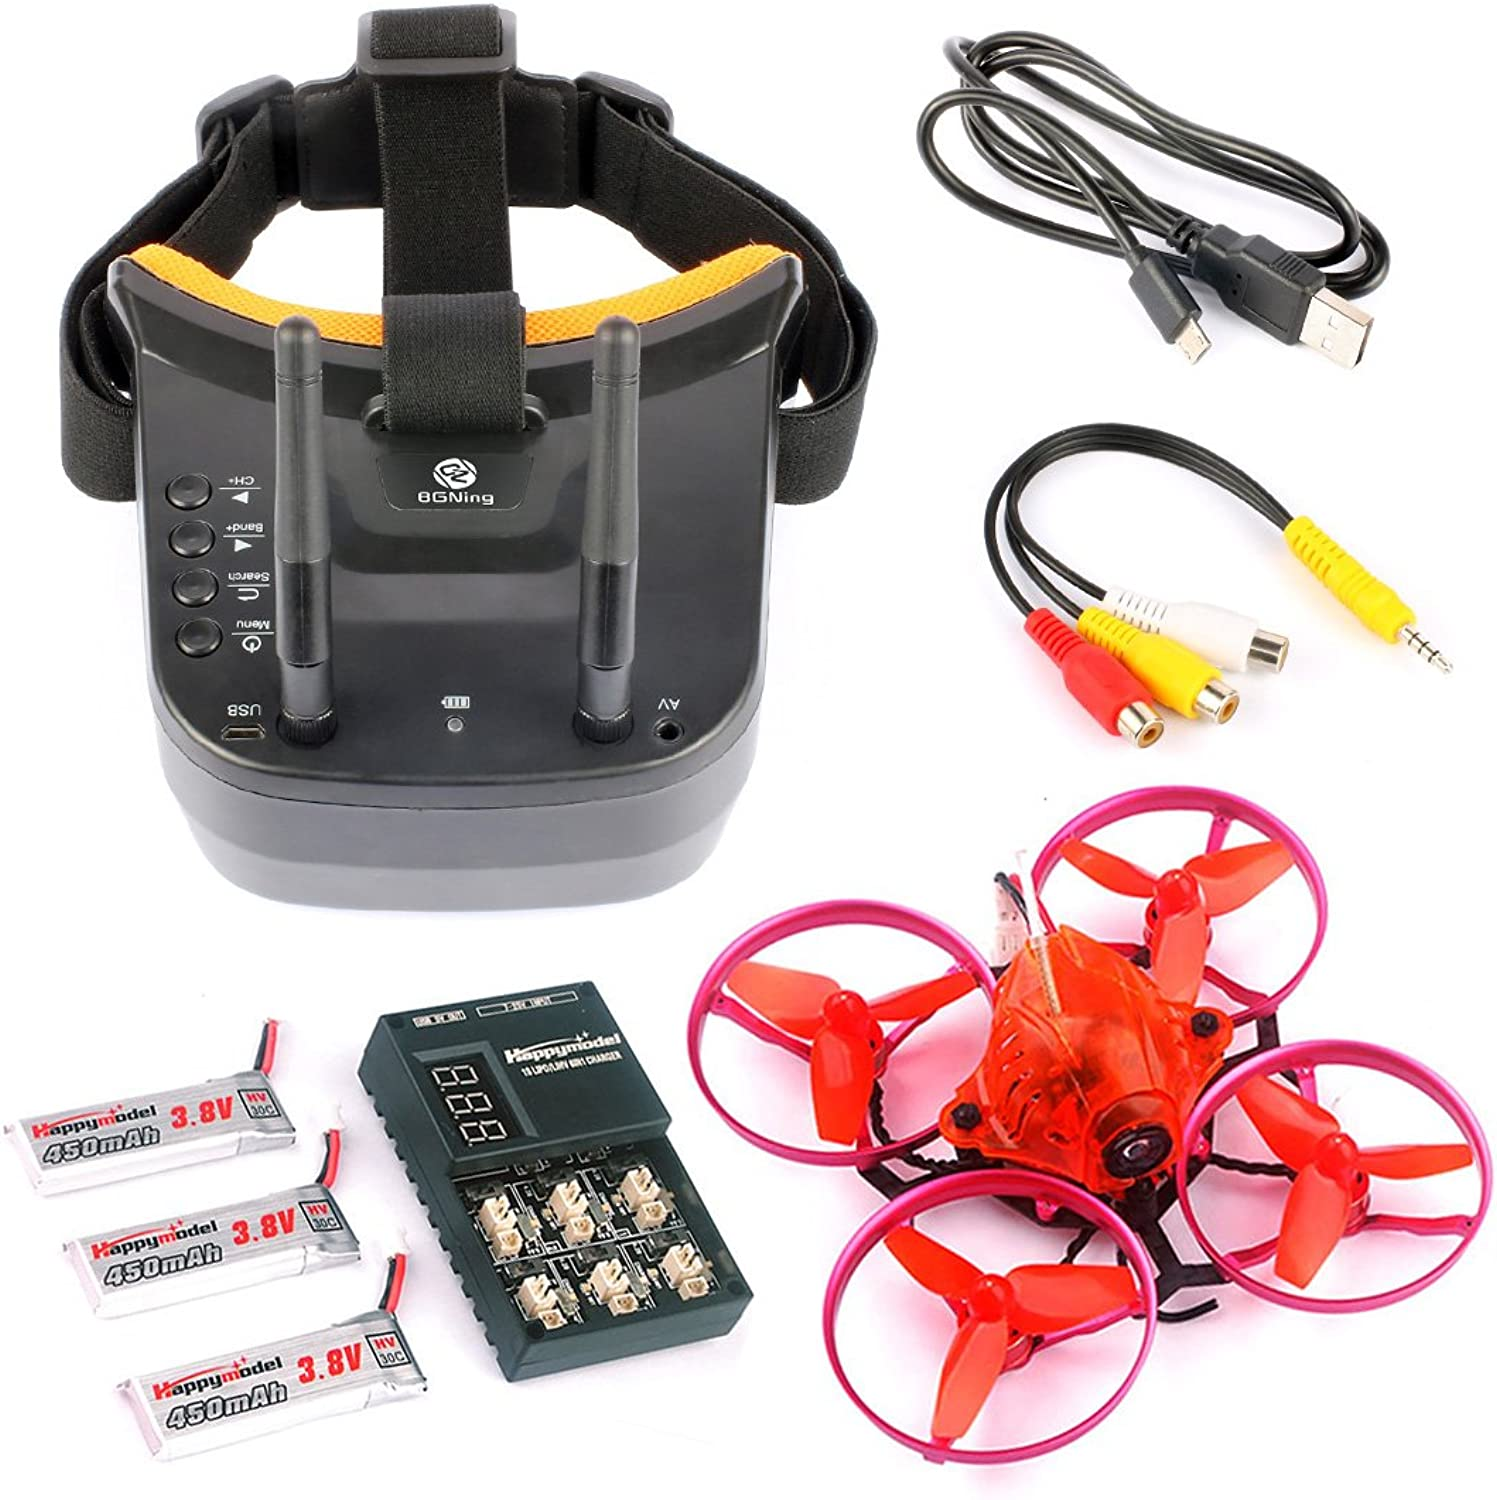 BGNing Snapper7 Brushless Micro 75mm FPV Racer Drone RC Quadcopter RTF 700TVL Camera VTX and Double Antenna